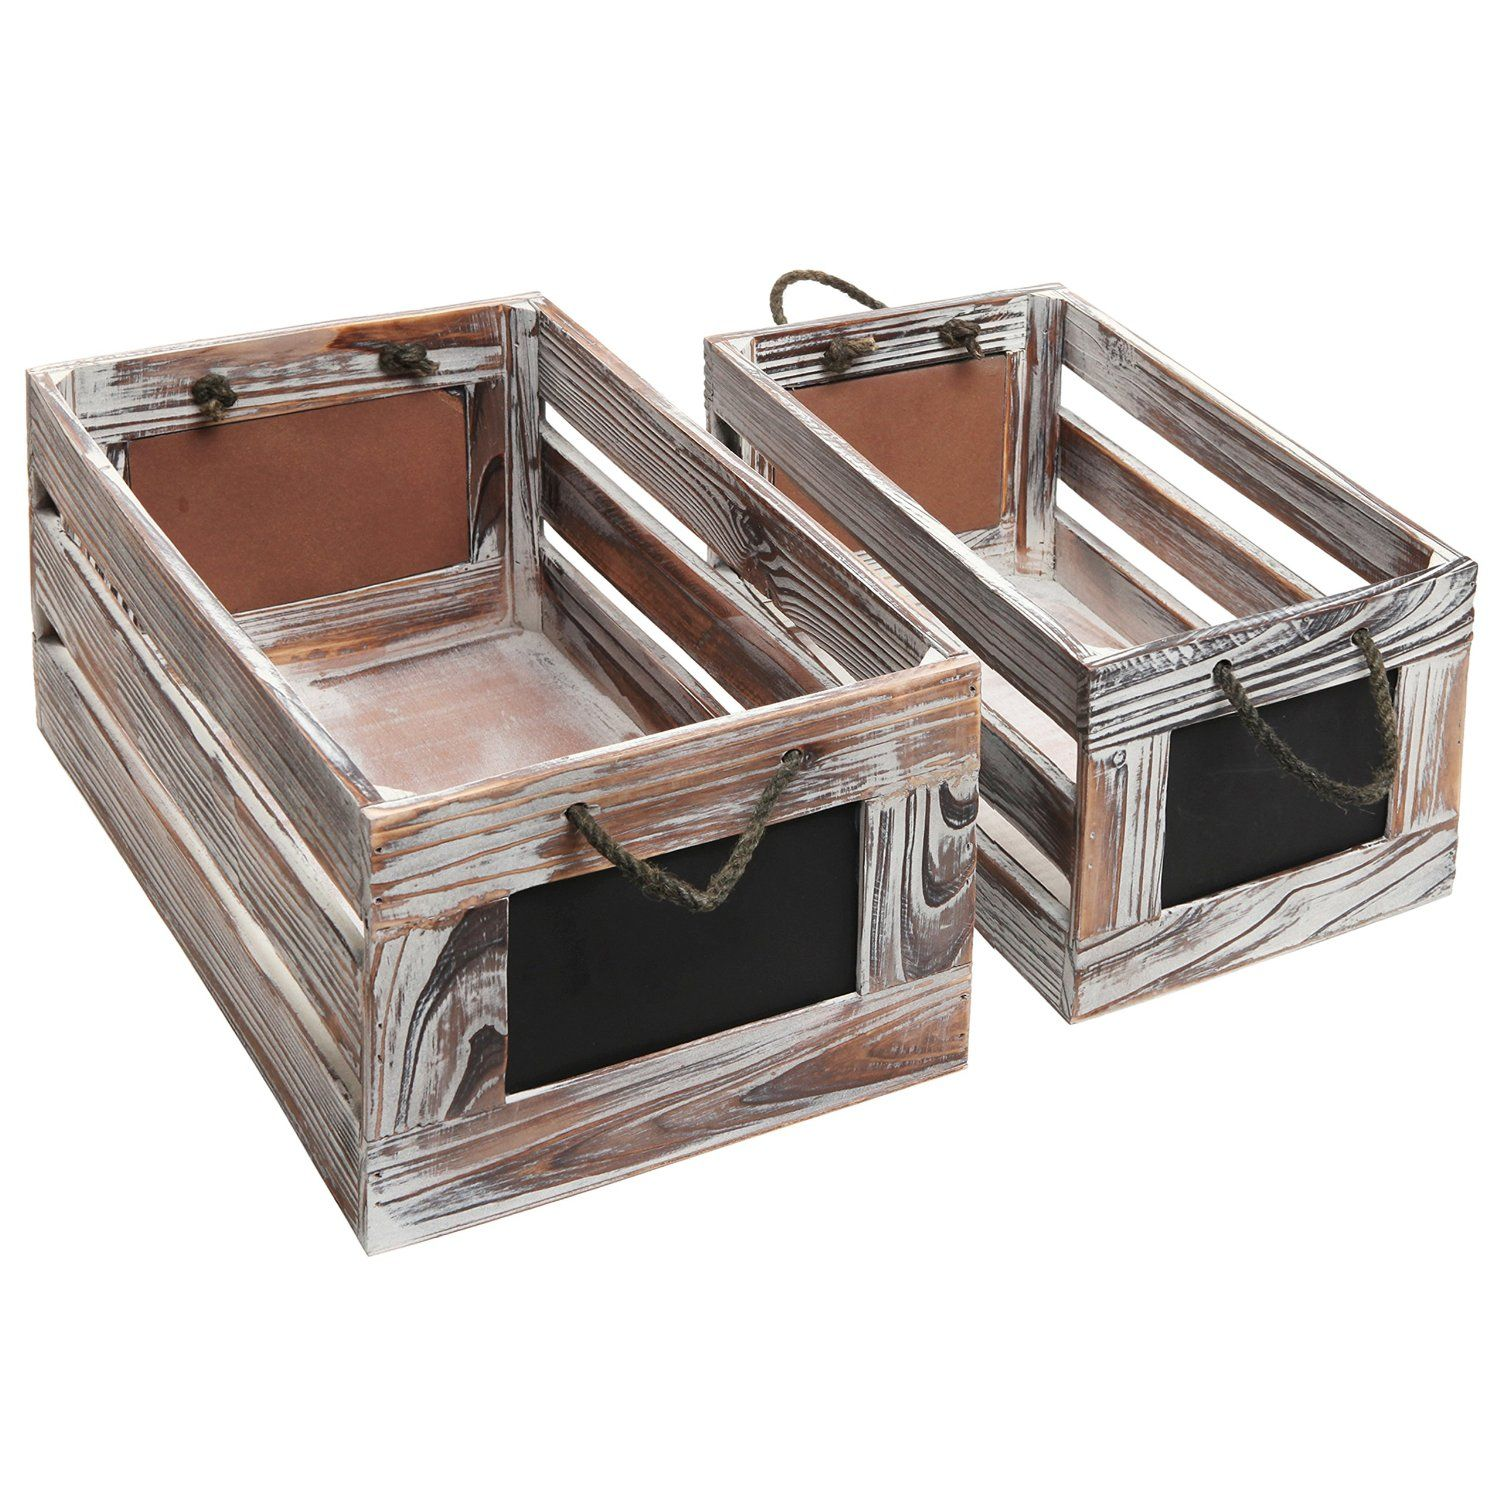 Amazon Com Distressed Torched Wood Finish Nesting Boxes Rustic Storage Crates With Chalkboard Labels S Wooden Crates Wholesale Wooden Crates Crate Storage